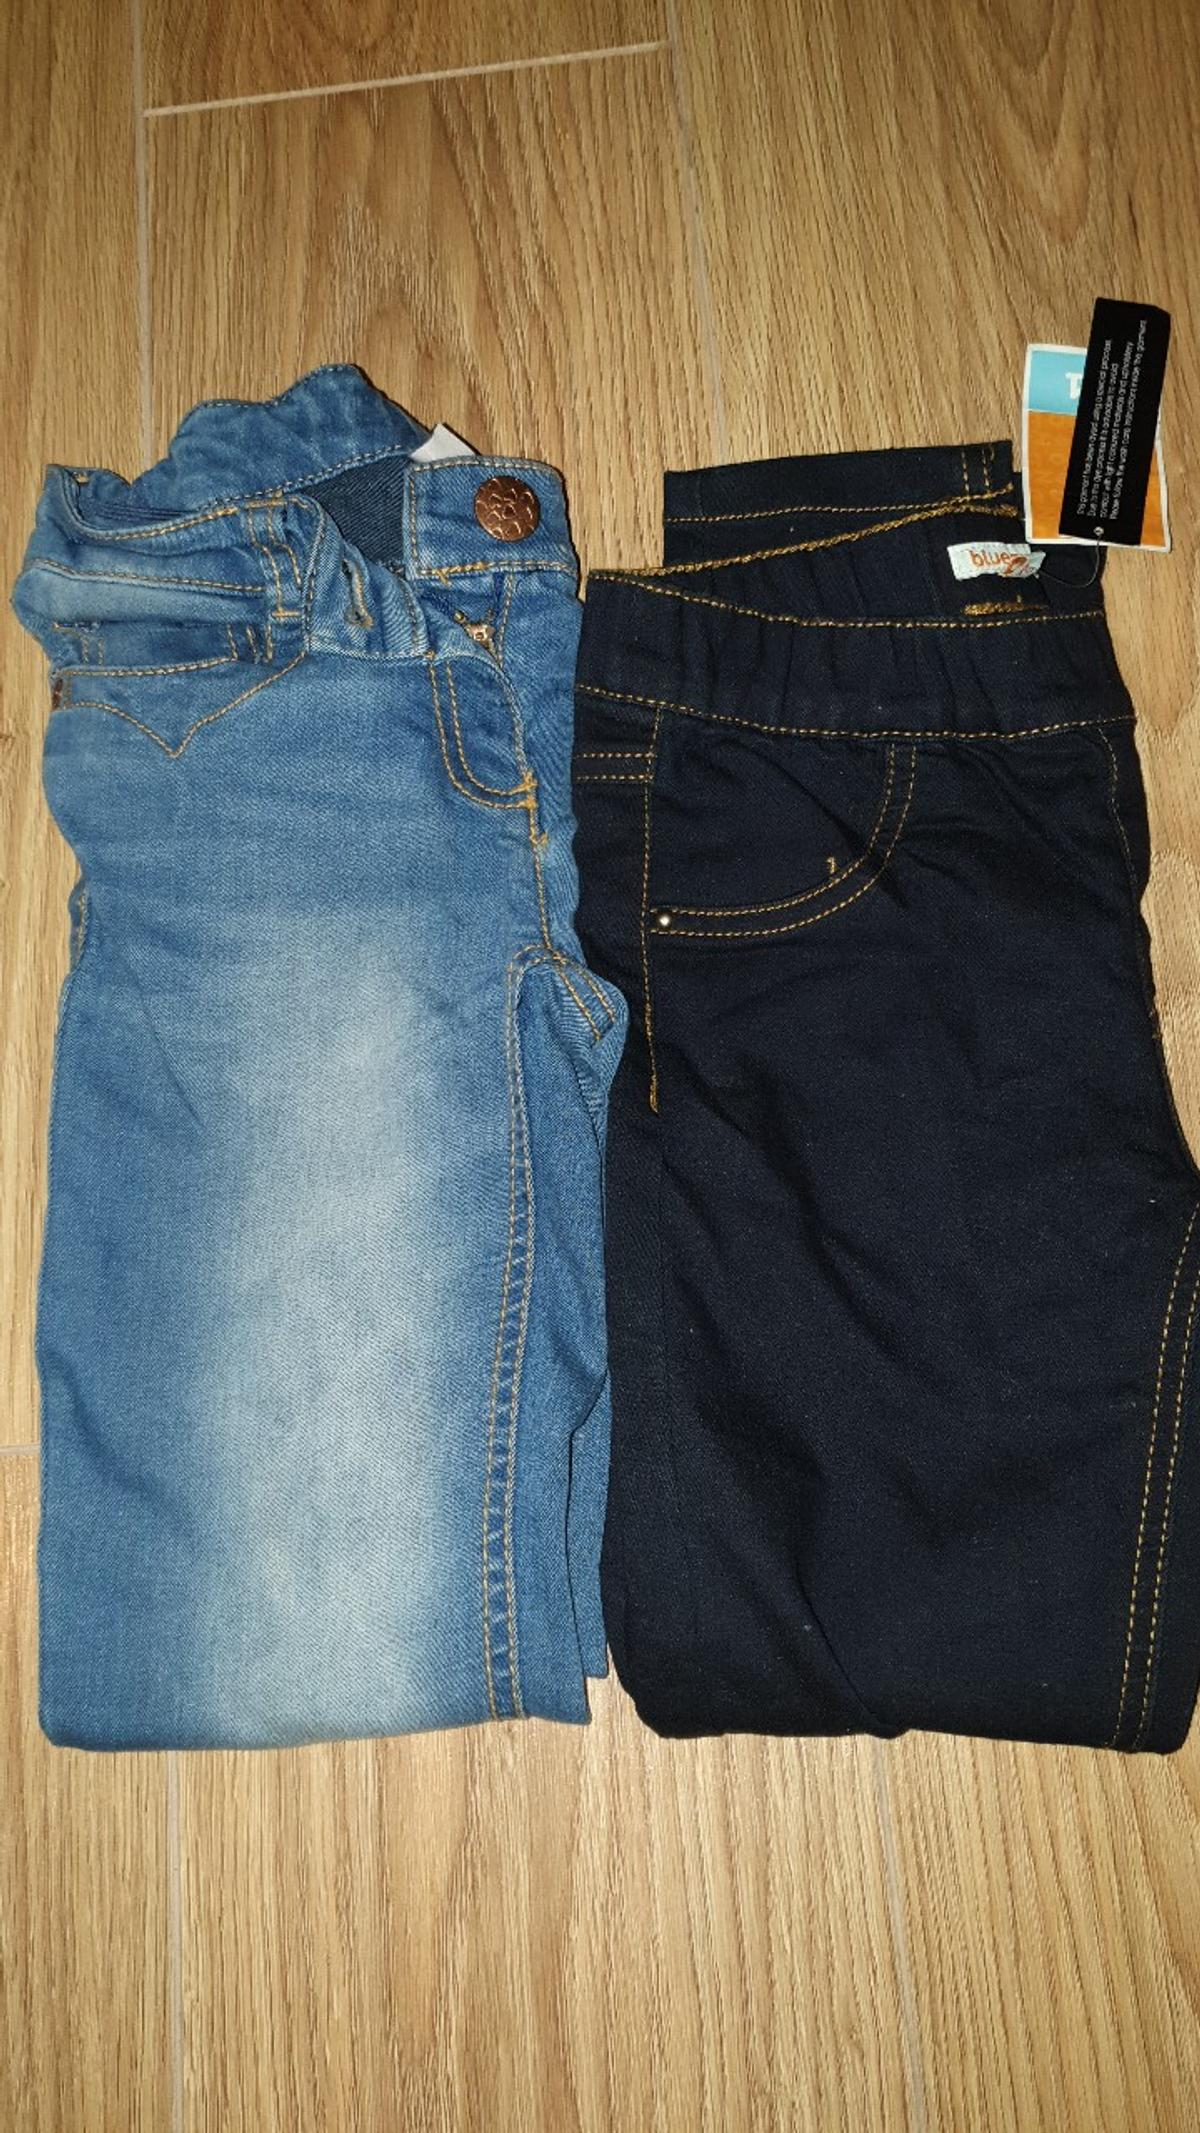 size 8 girls Jean's great condition hardly worn